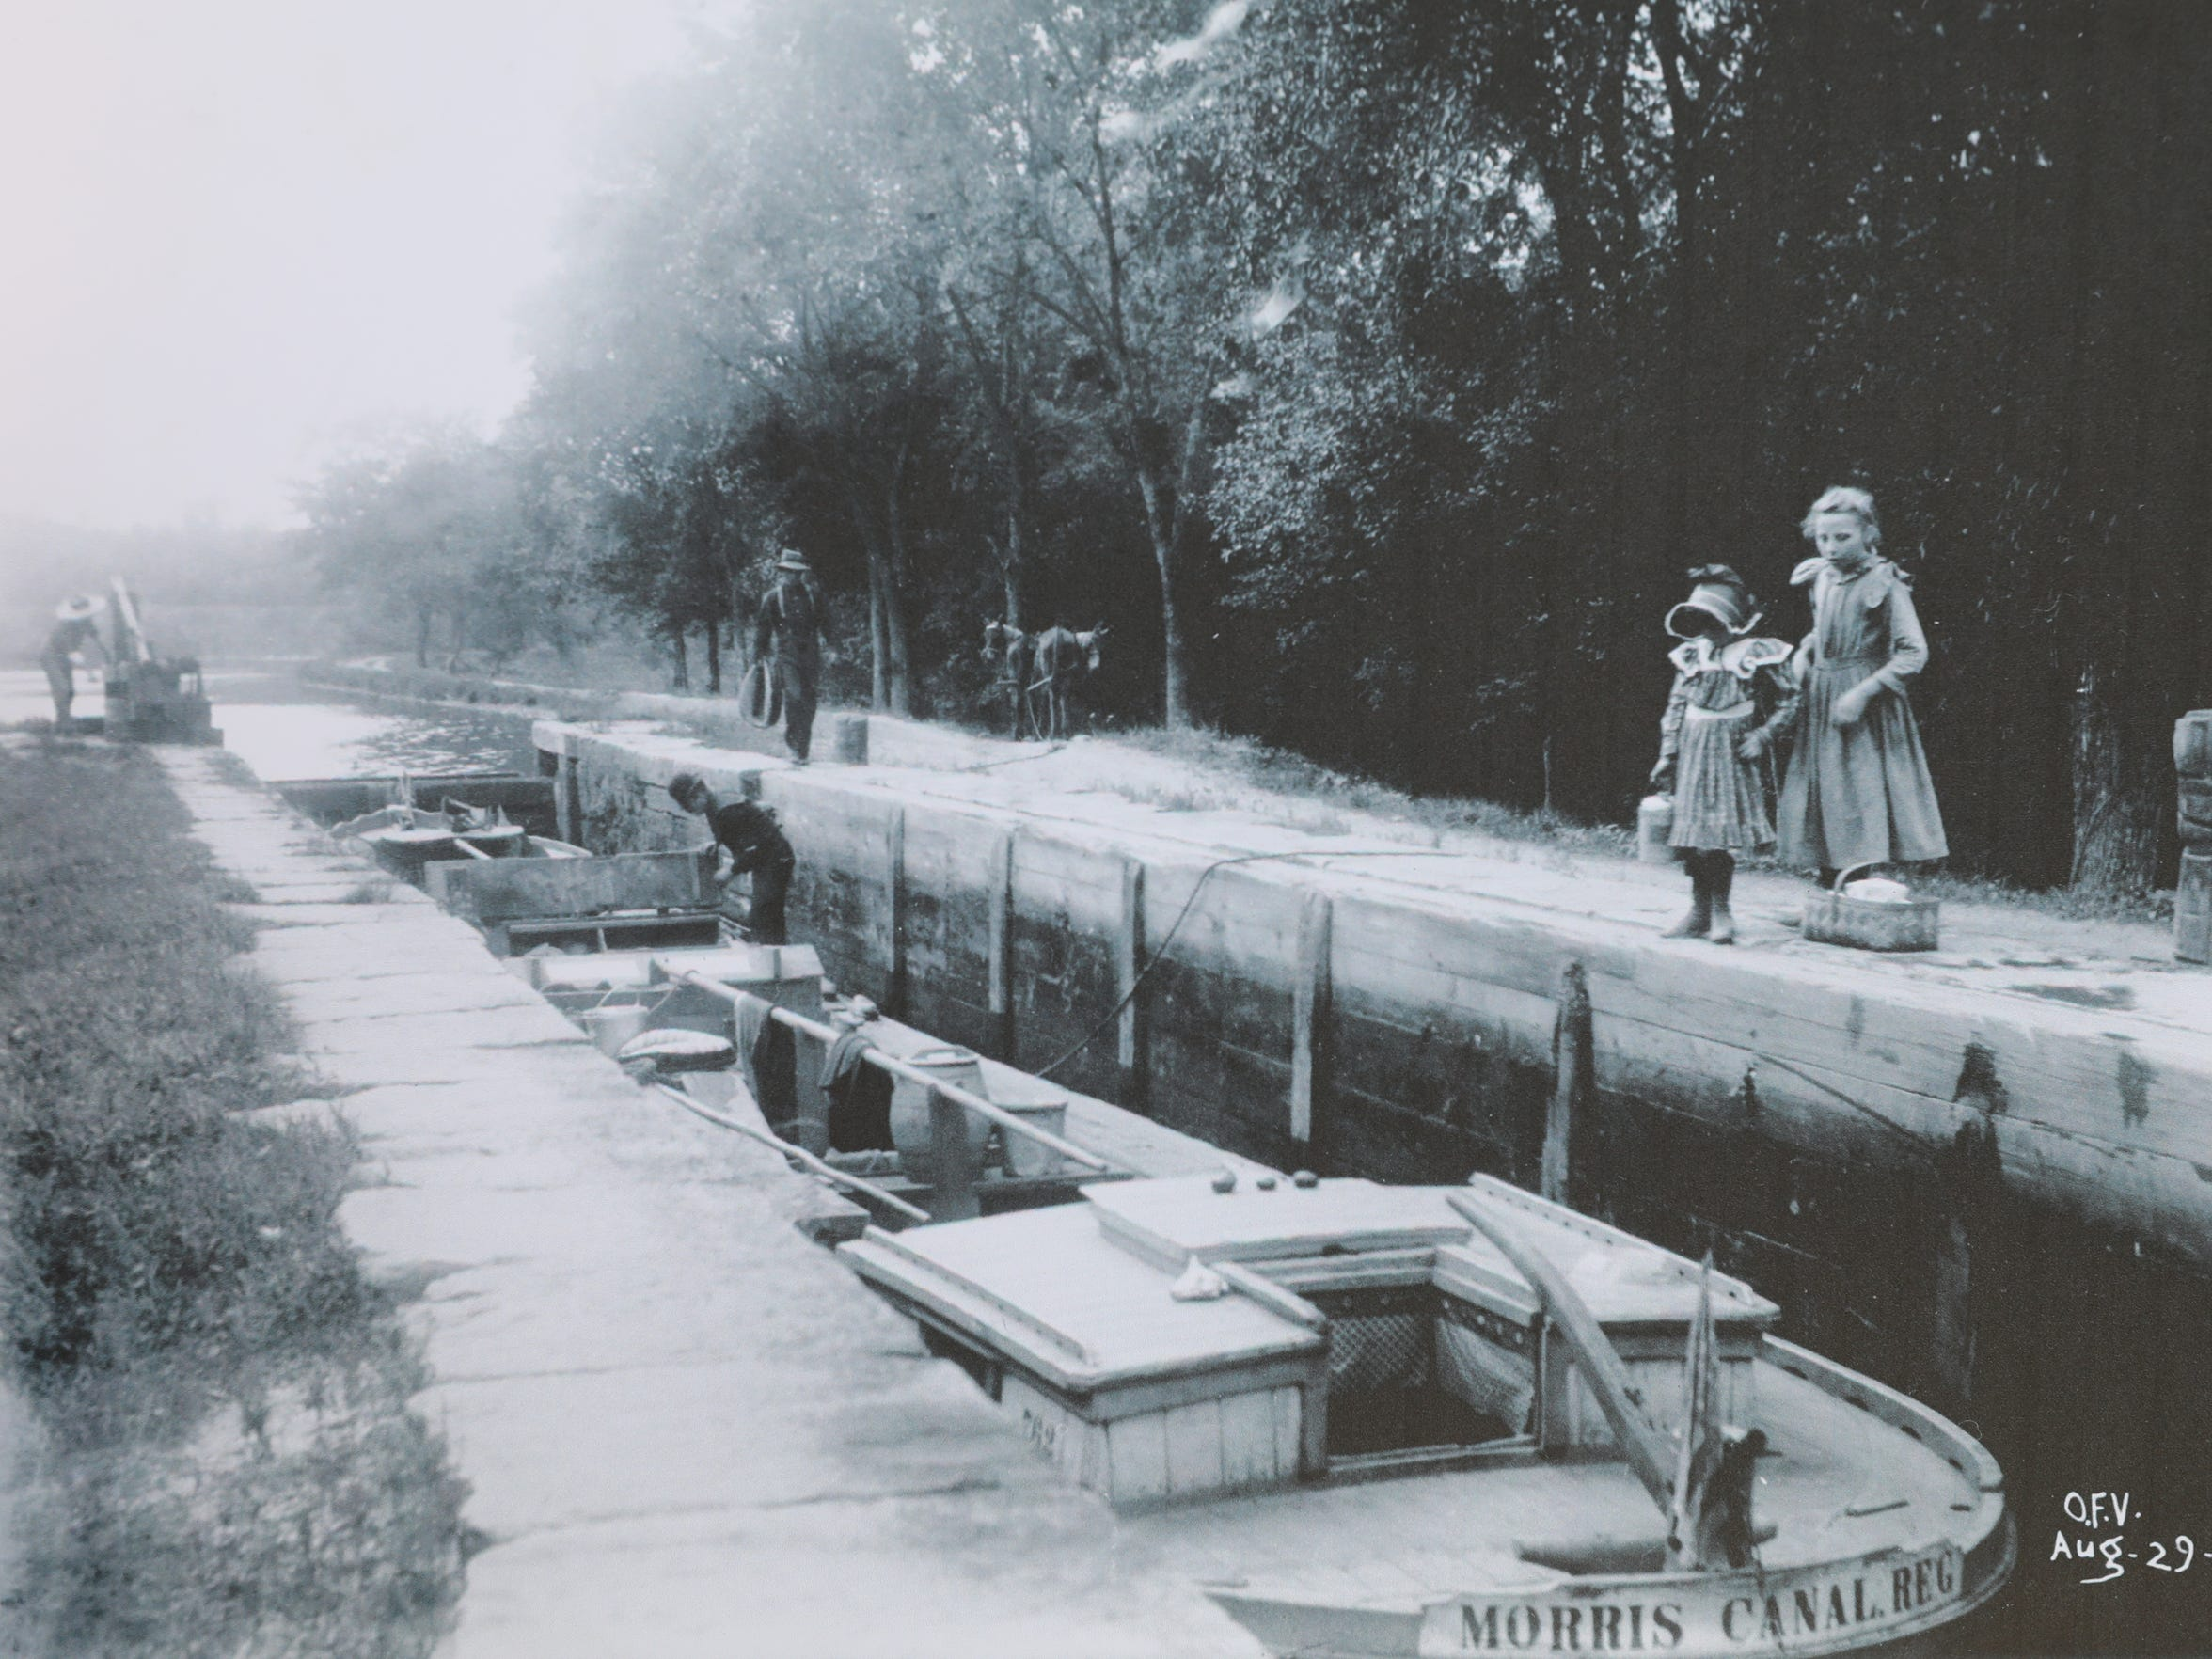 Lock 2 East on the Morris Canal around 1904.